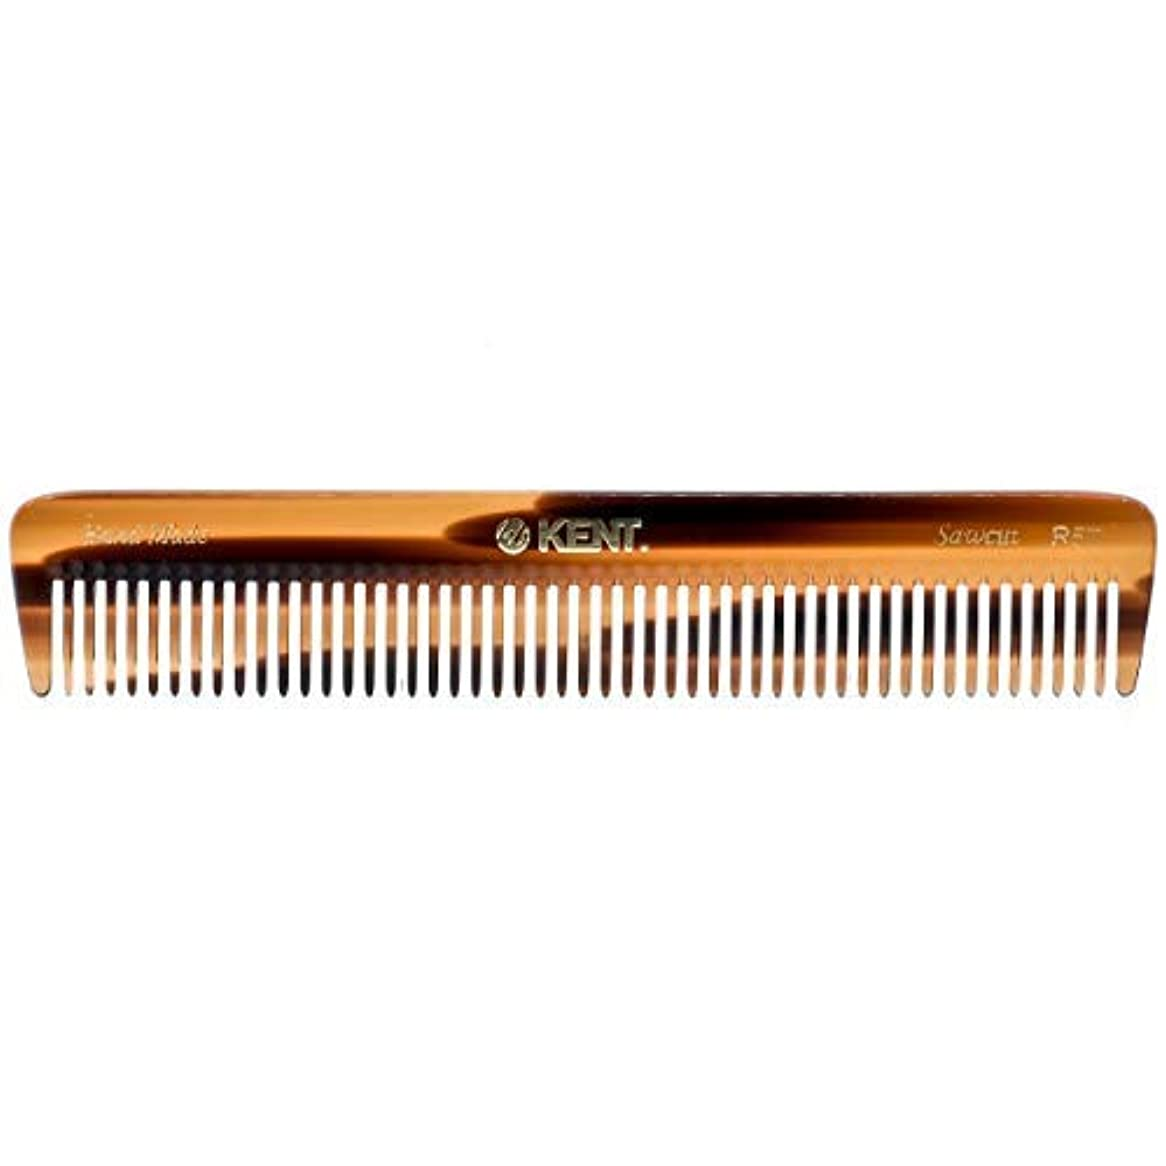 取る消費者無条件Kent The Hand Made Comb Coarse/Fine for Men 6.5 Inch, 1 Ounce [並行輸入品]